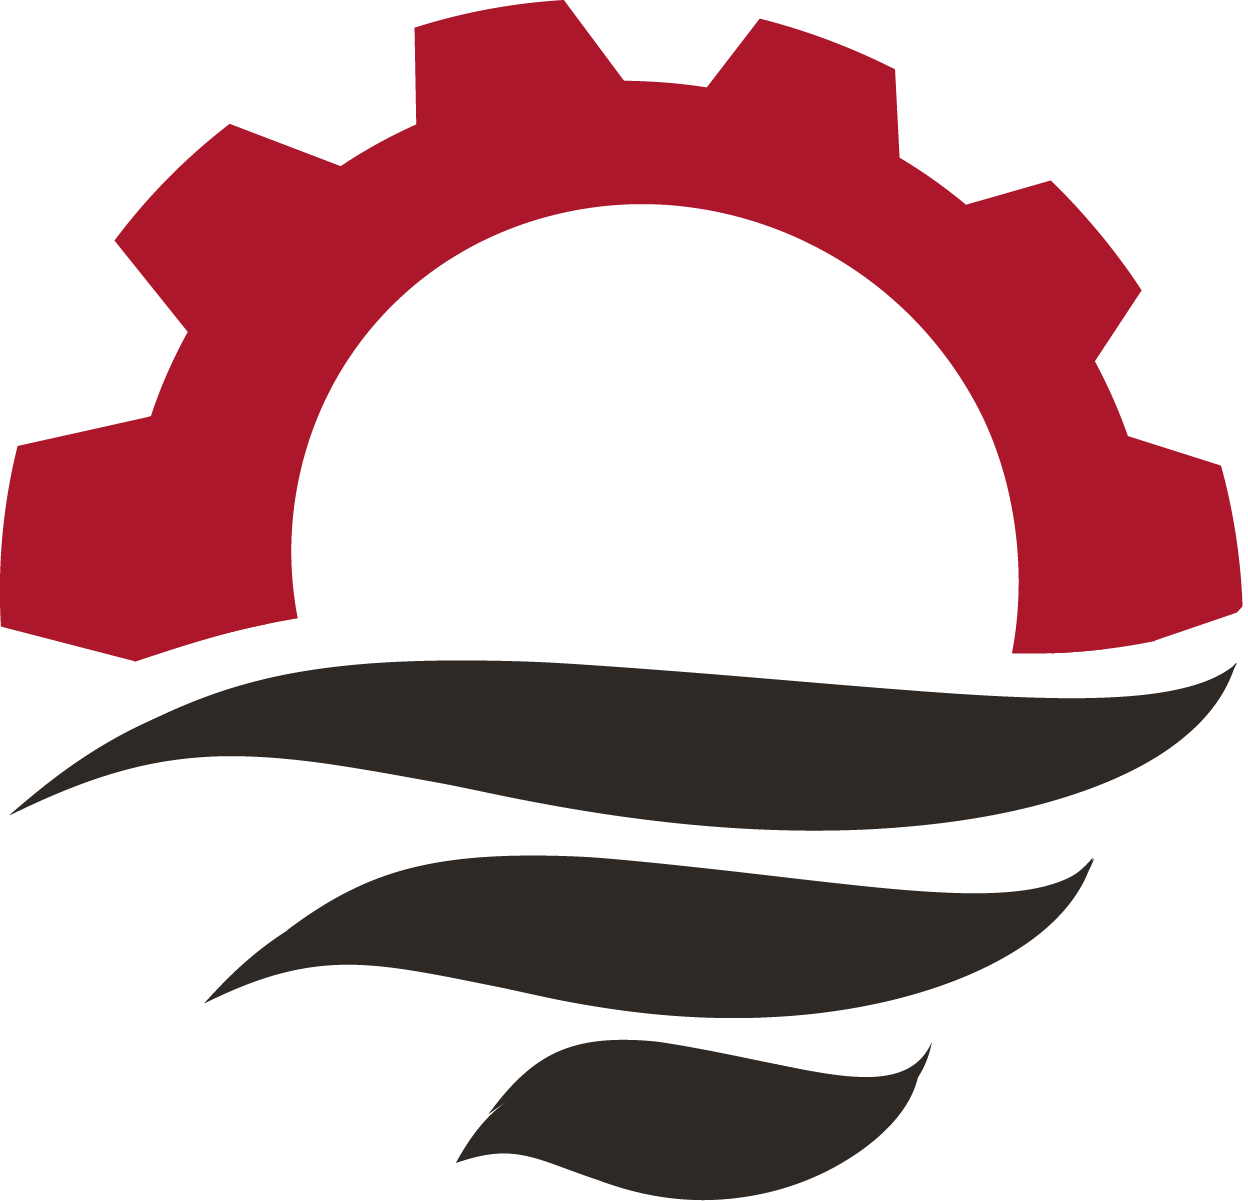 Three Rivers Machinery Logo_Red 187 & Black.png